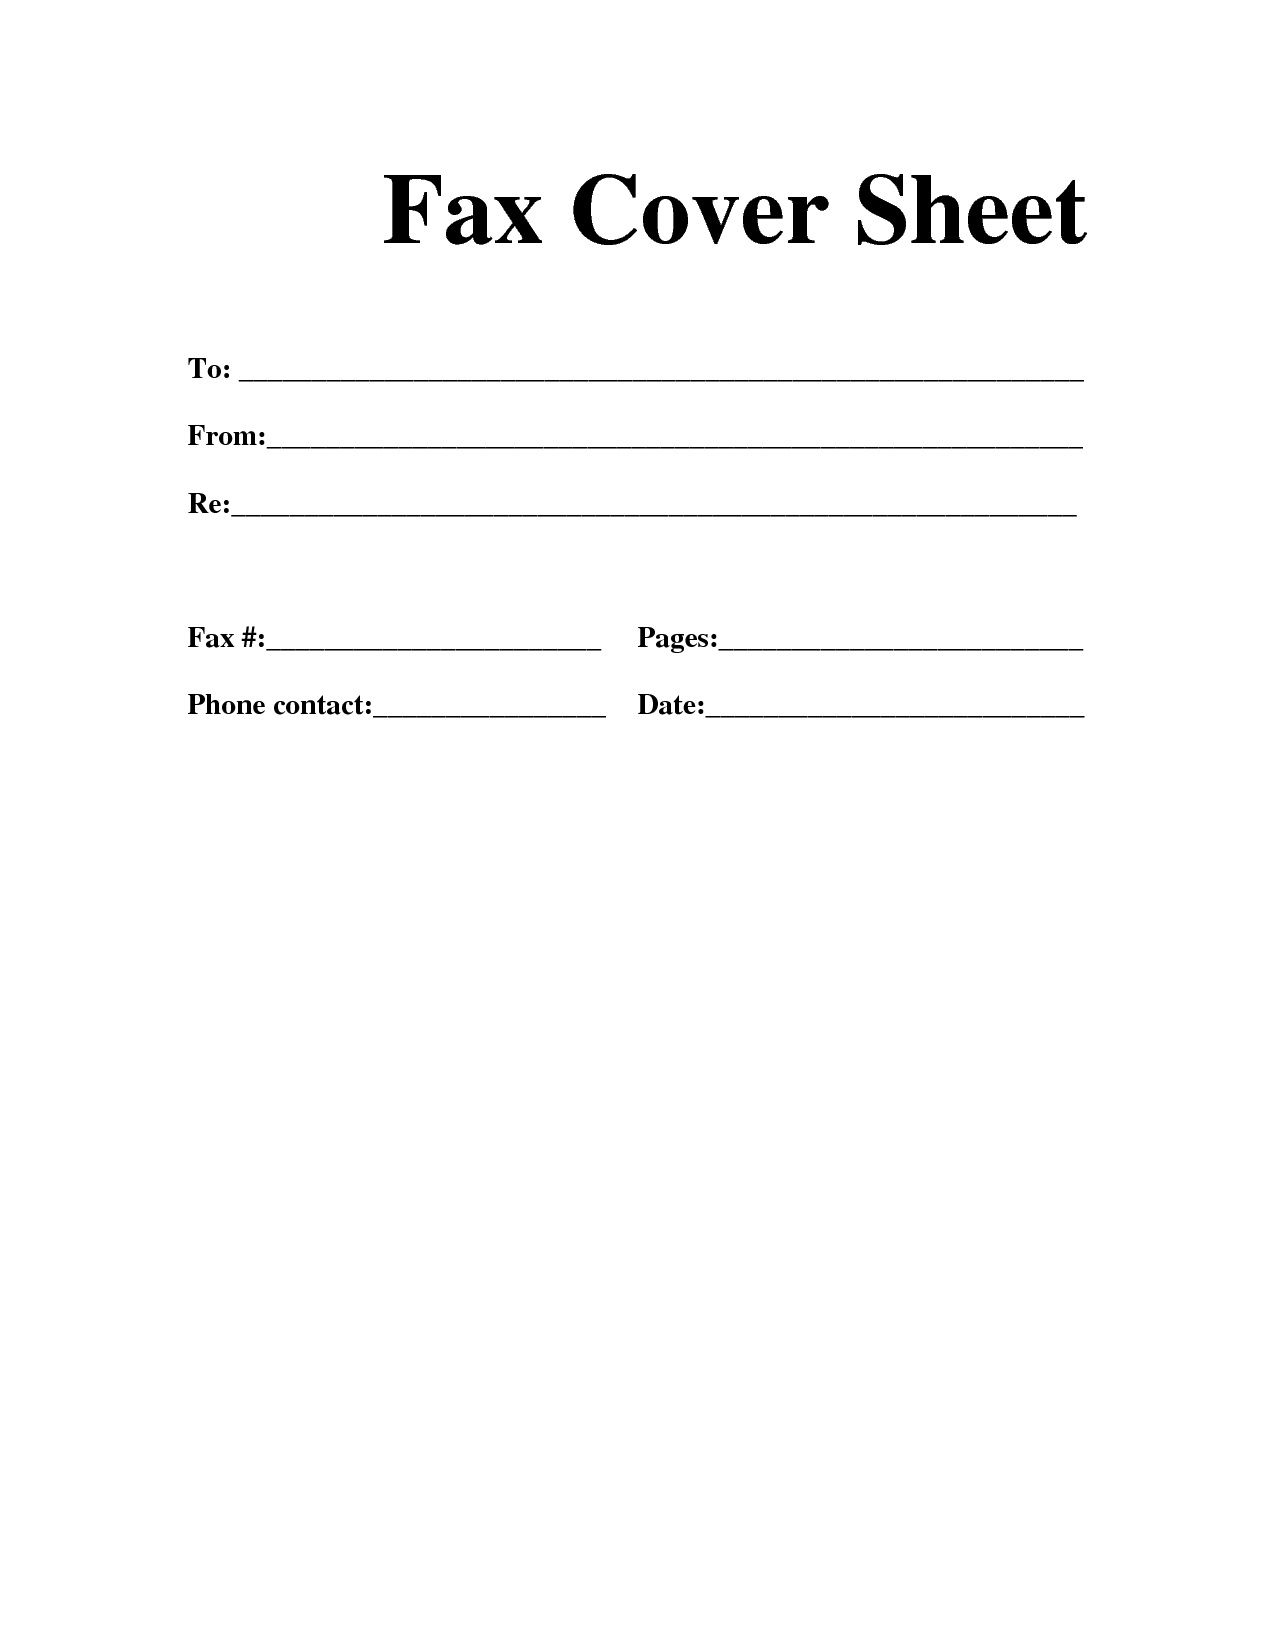 Free Downloads Fax Covers Sheets – Professional Fax Cover Sheet Template